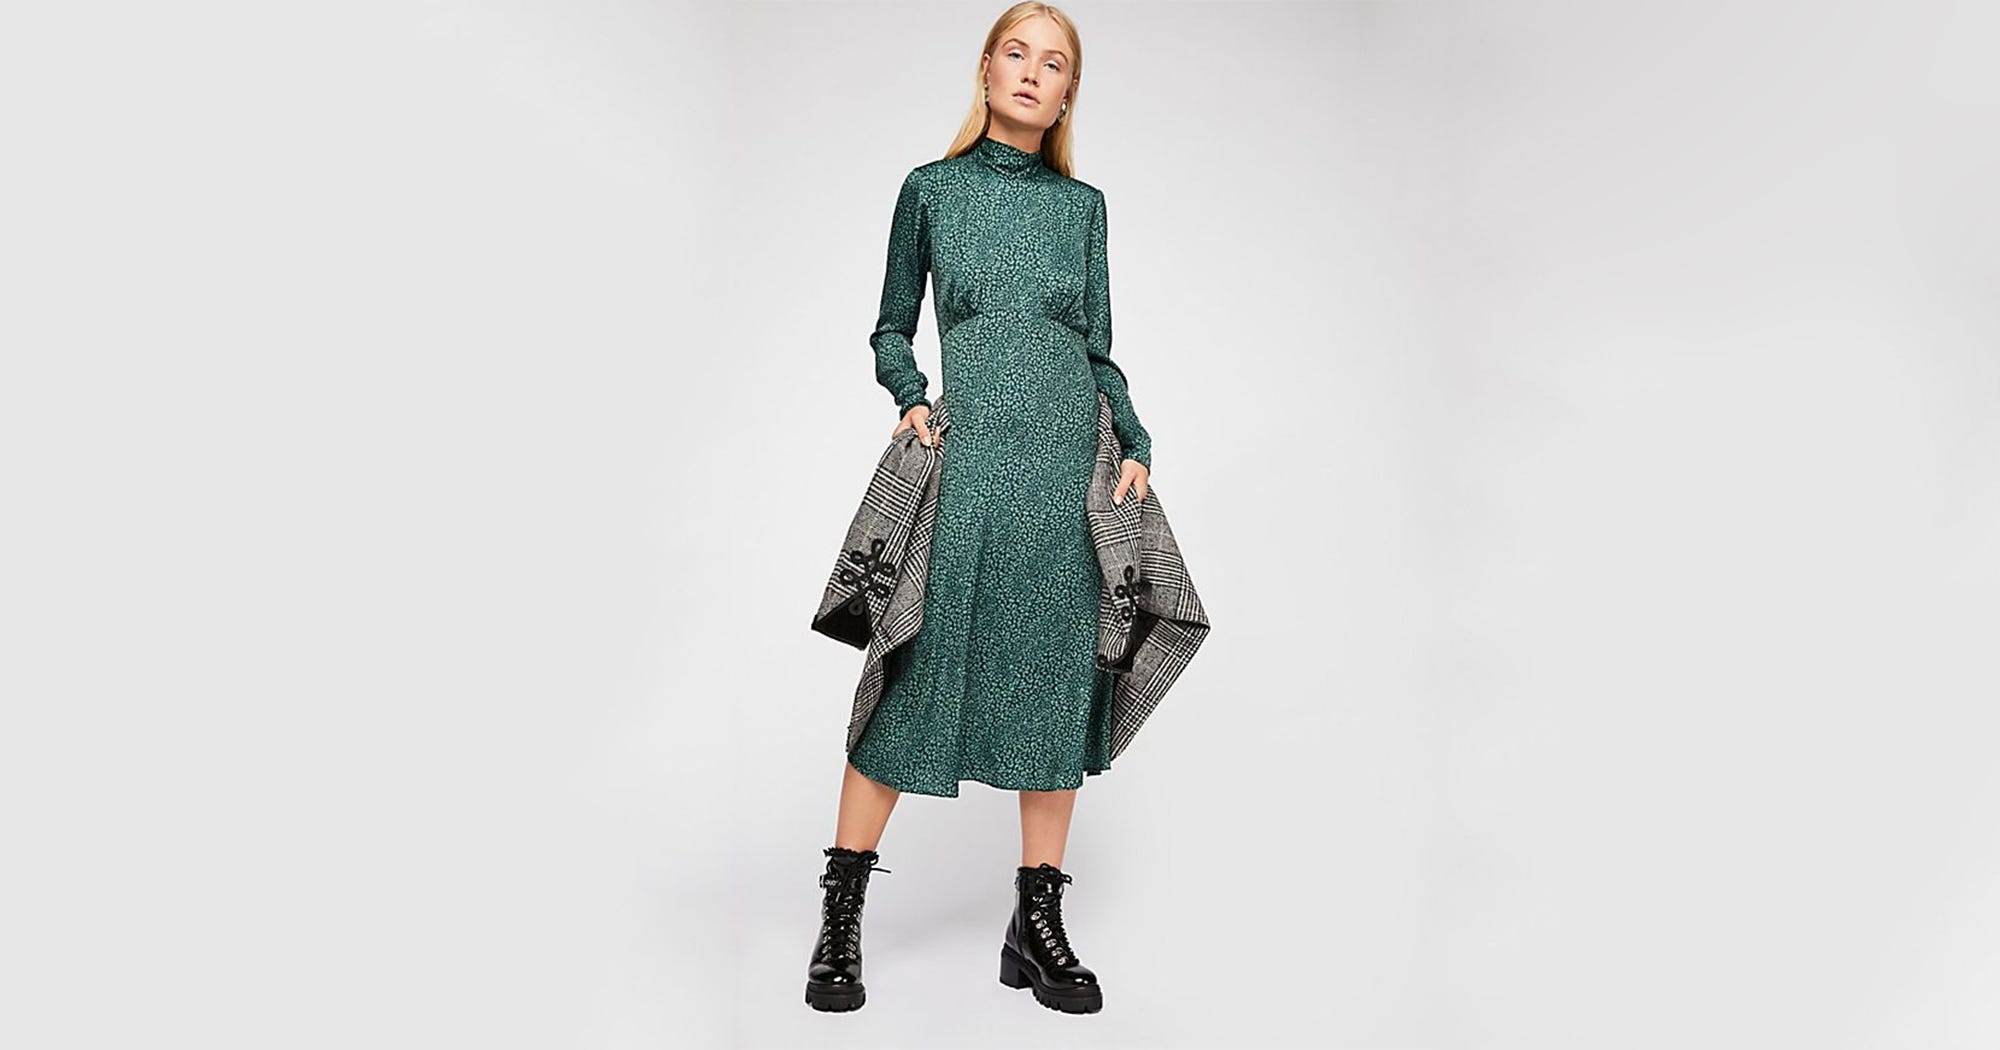 28ddd88c033 Cute Long Sleeve Midi Dresses From Casual To Formal